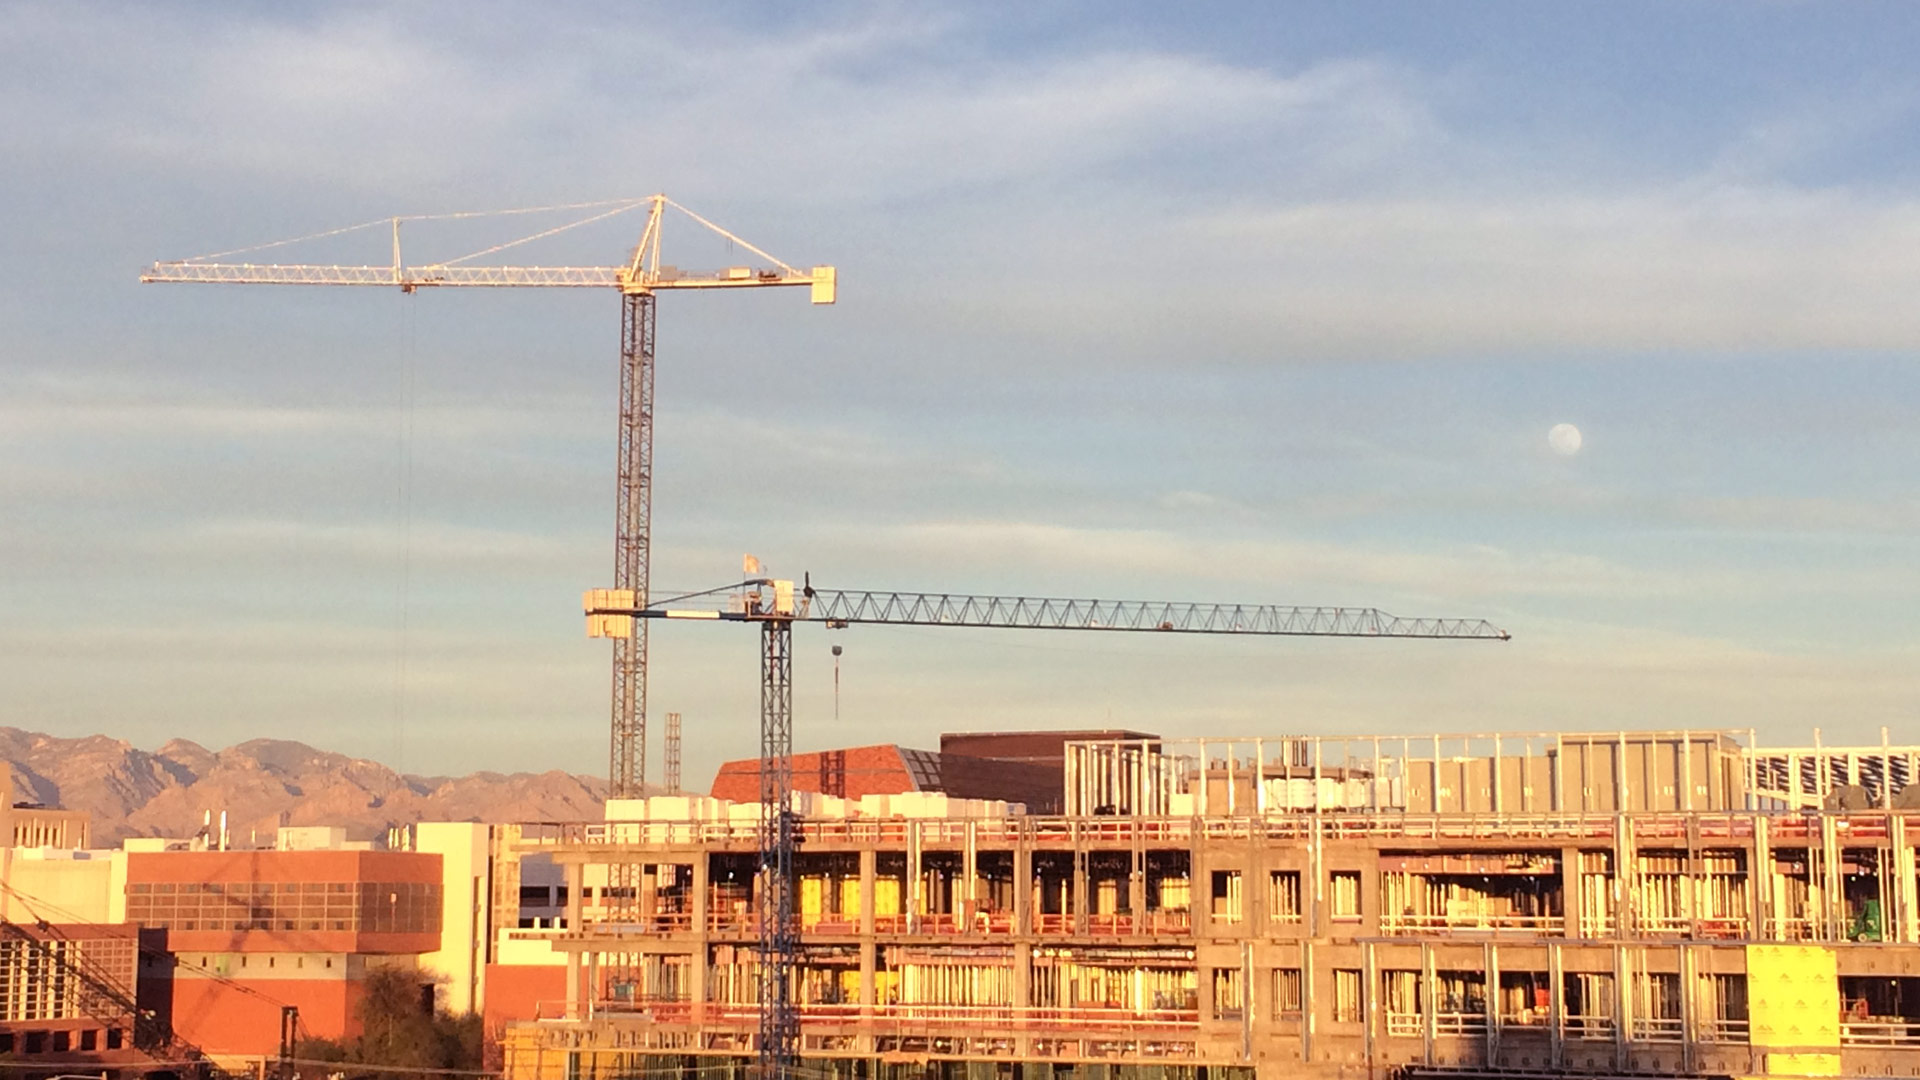 Cranes tower over the construction site at Banner University Medical Center.